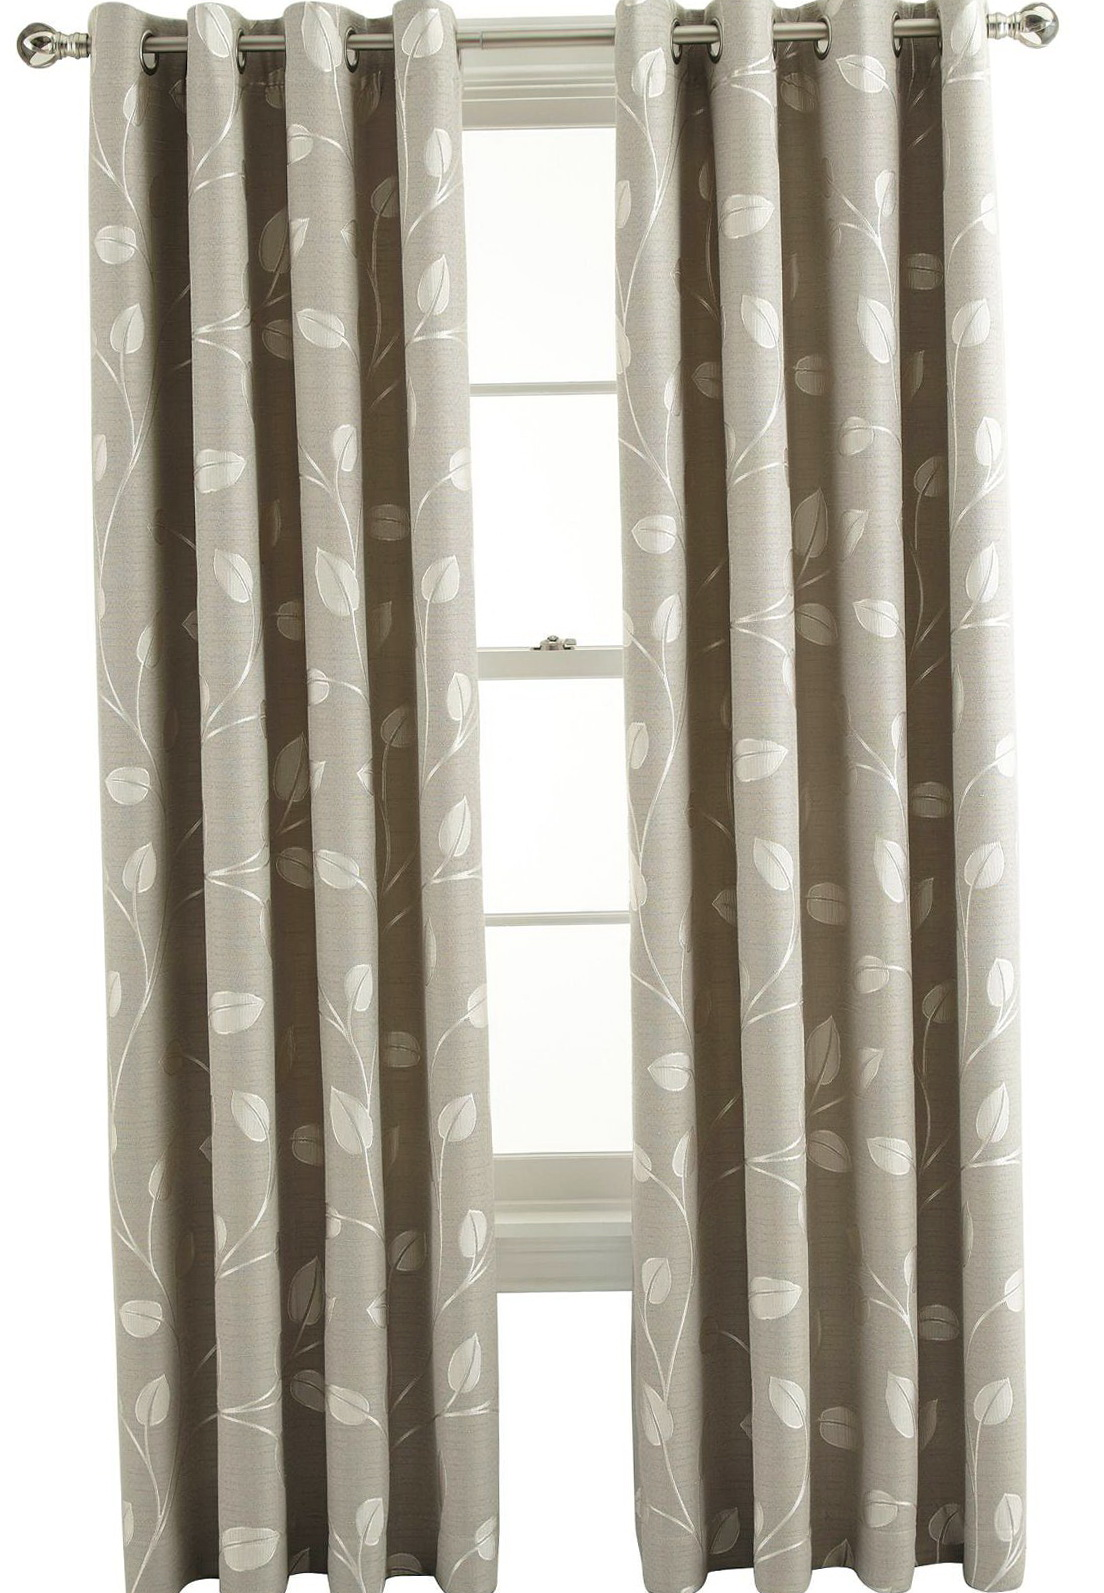 95 Inch Curtains Target Home Design Ideas